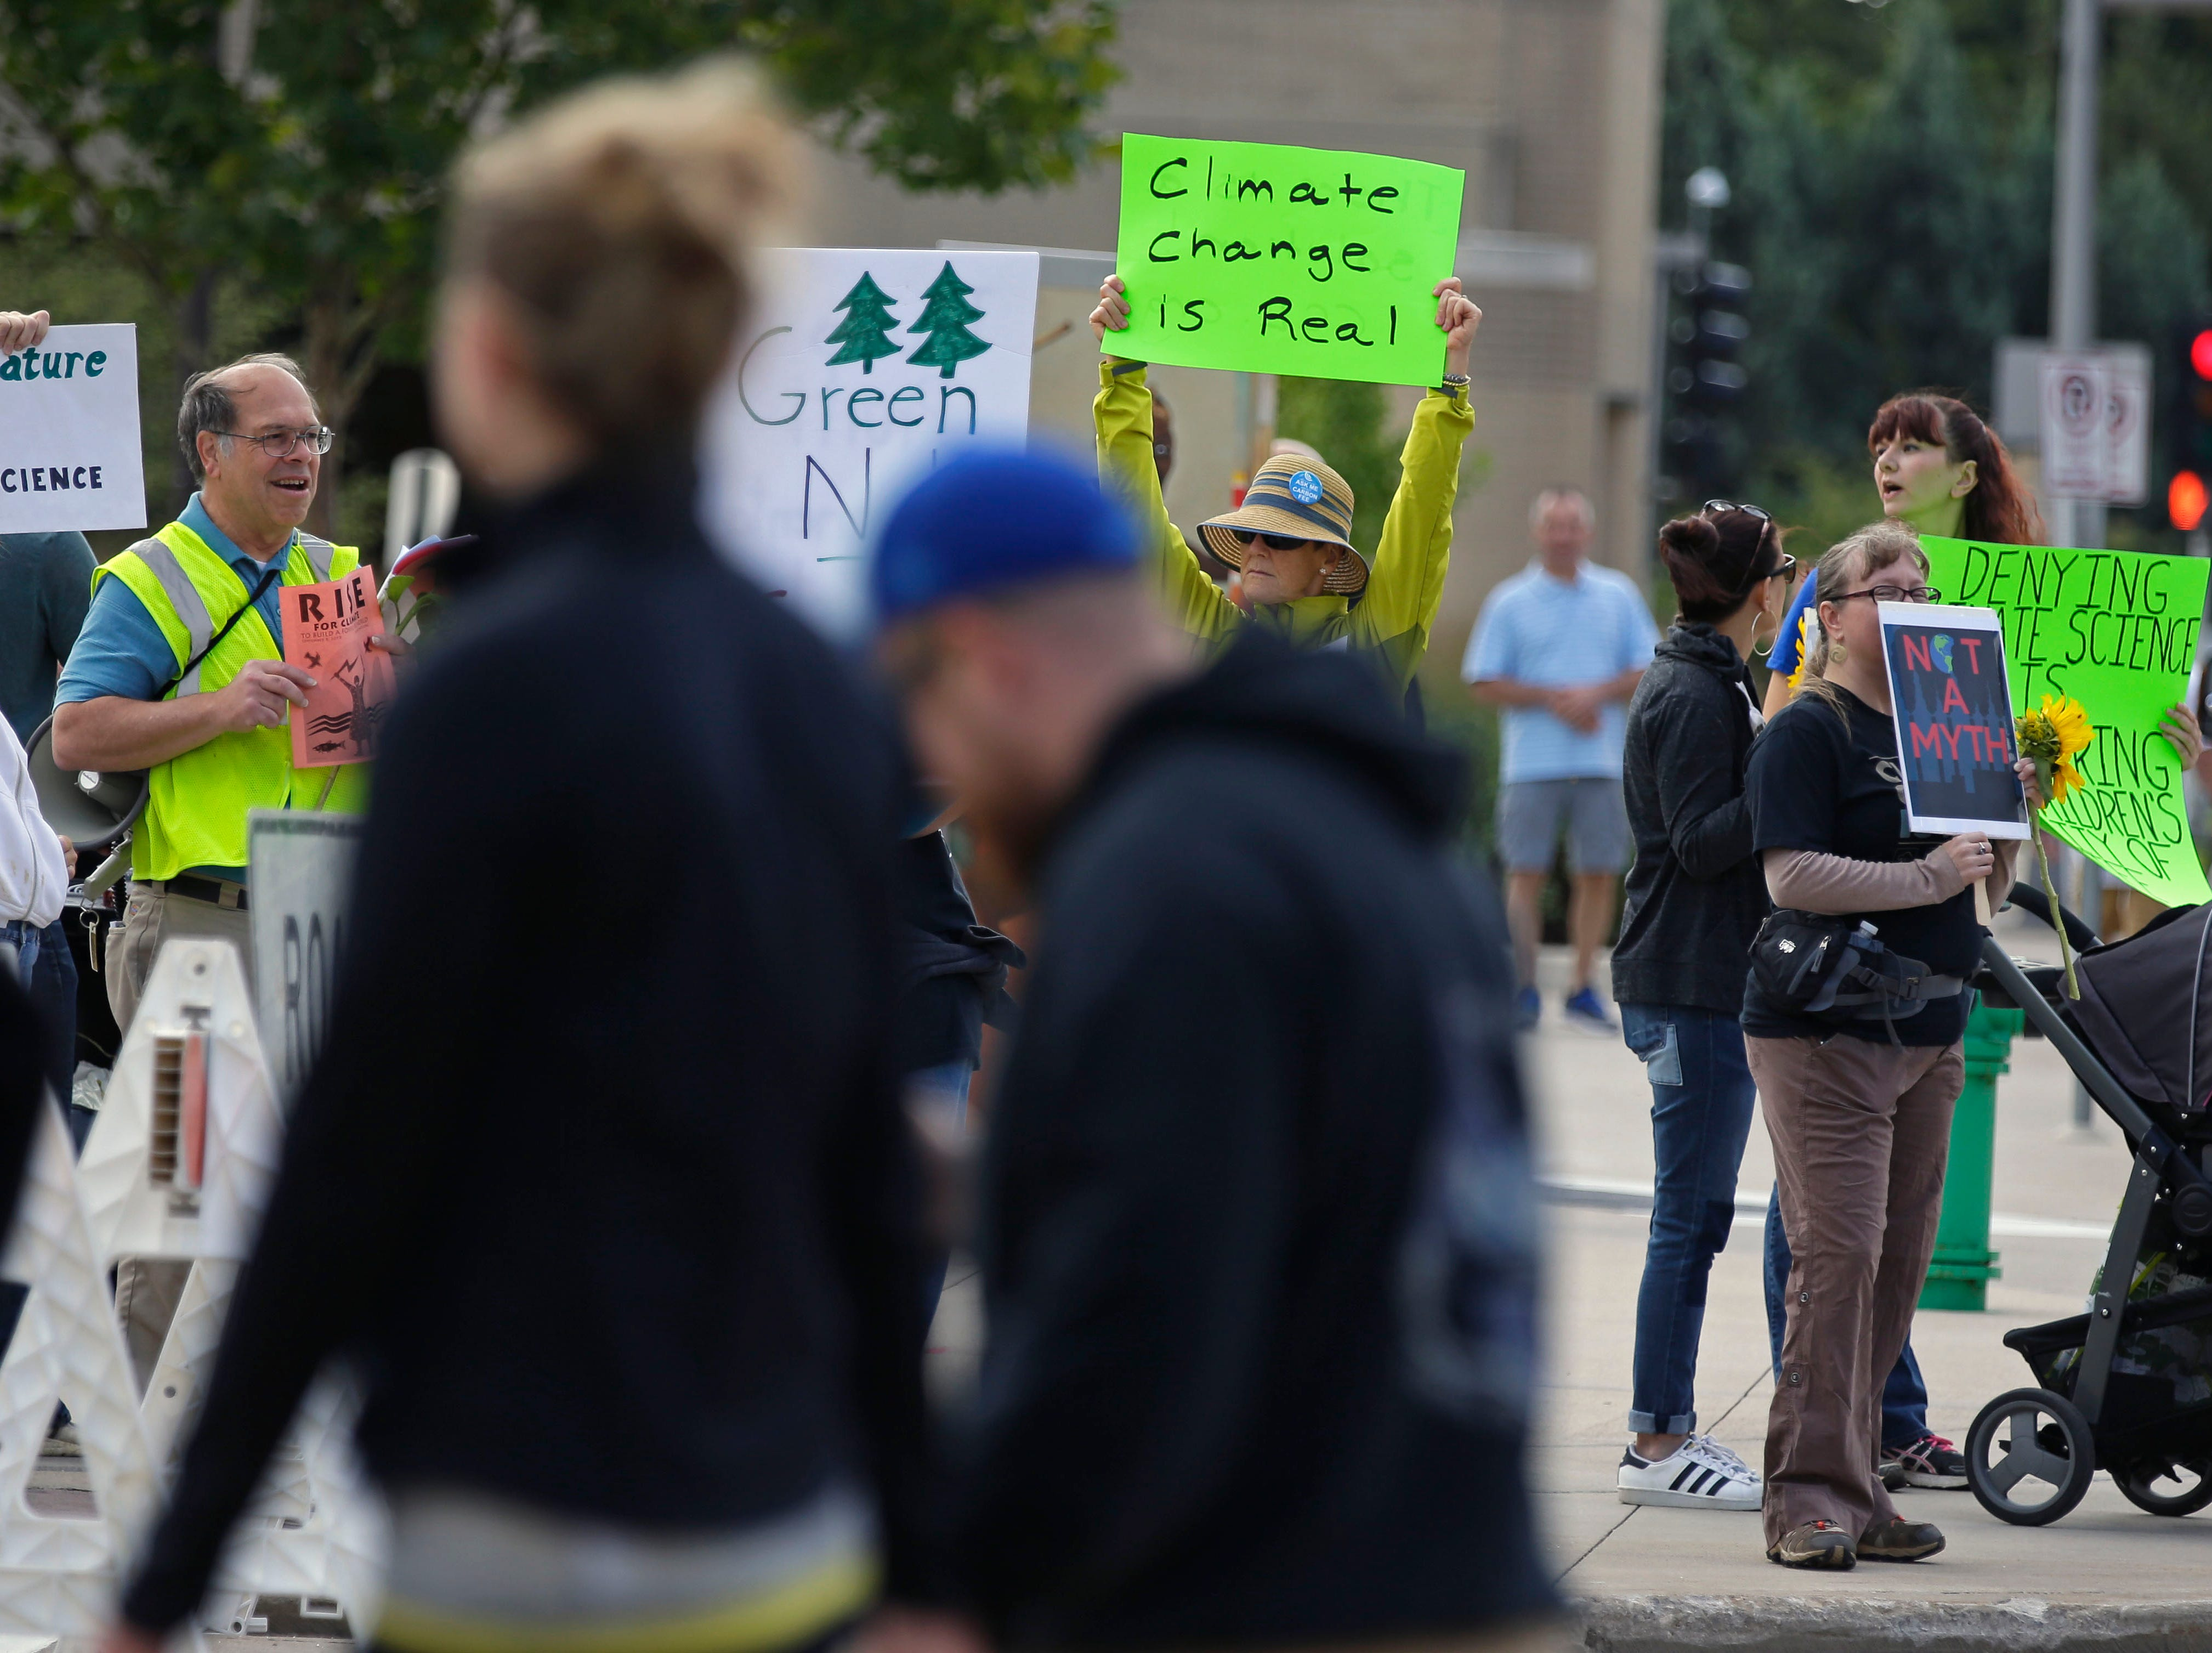 A rally for Rise for Climate takes place Saturday, September 8, 2018, in downtown Appleton, Wis. The event was in conjunction with gatherings around the world before the Global Climate Action Summit to be held next week in California.